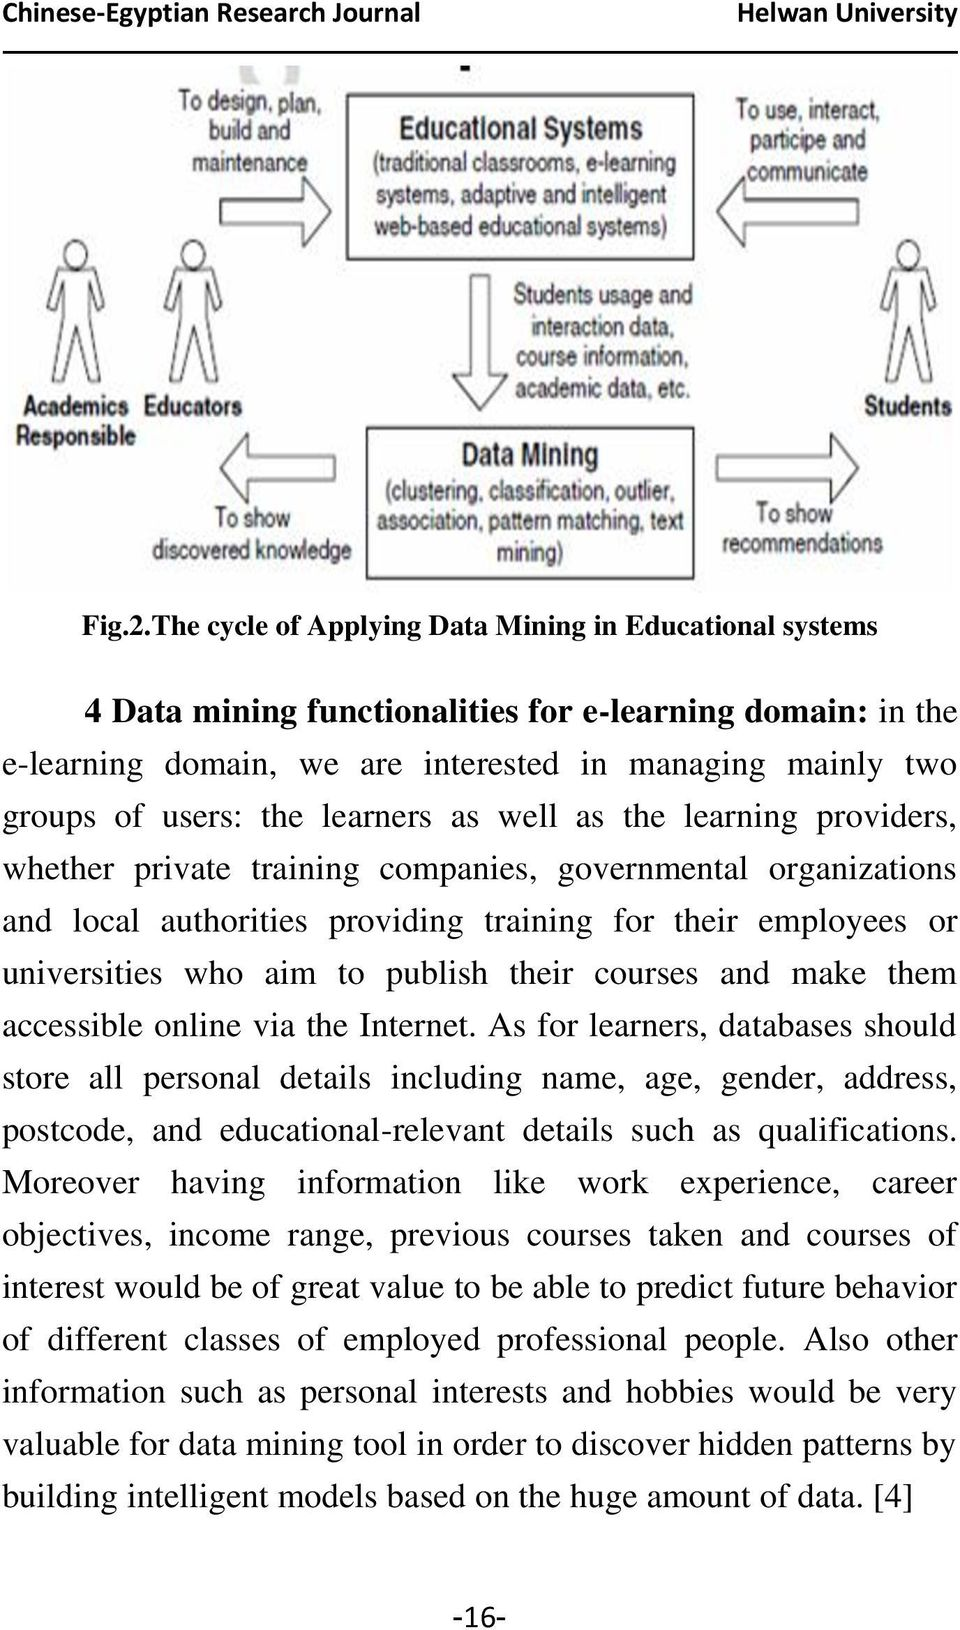 learners as well as the learning providers, whether private training companies, governmental organizations and local authorities providing training for their employees or universities who aim to